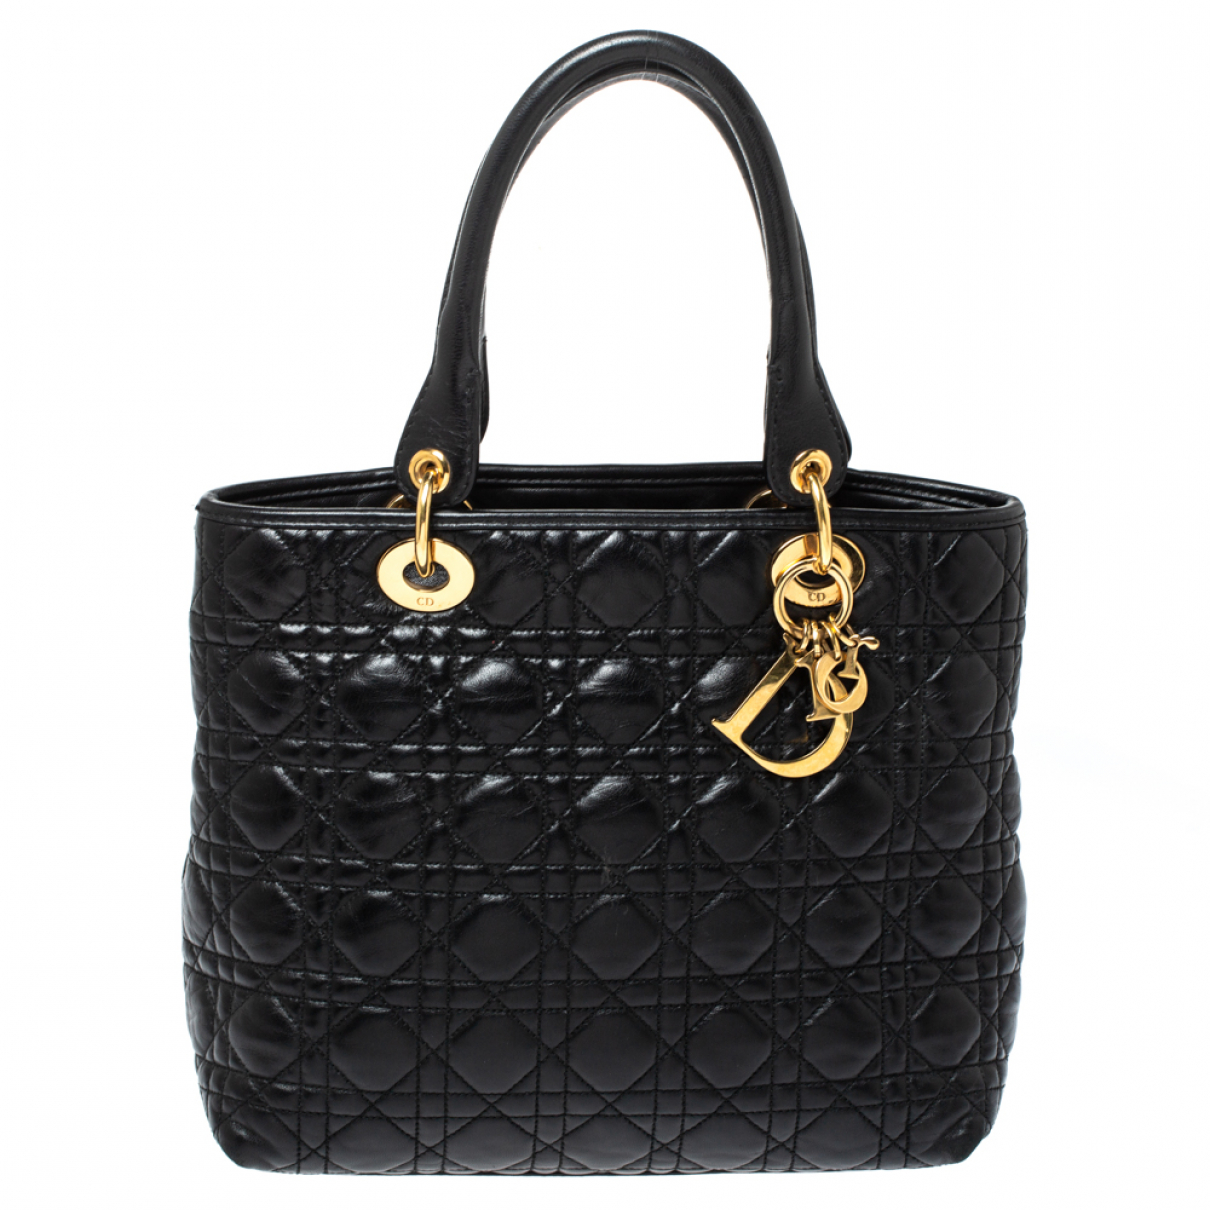 Dior N Black Leather handbag for Women N